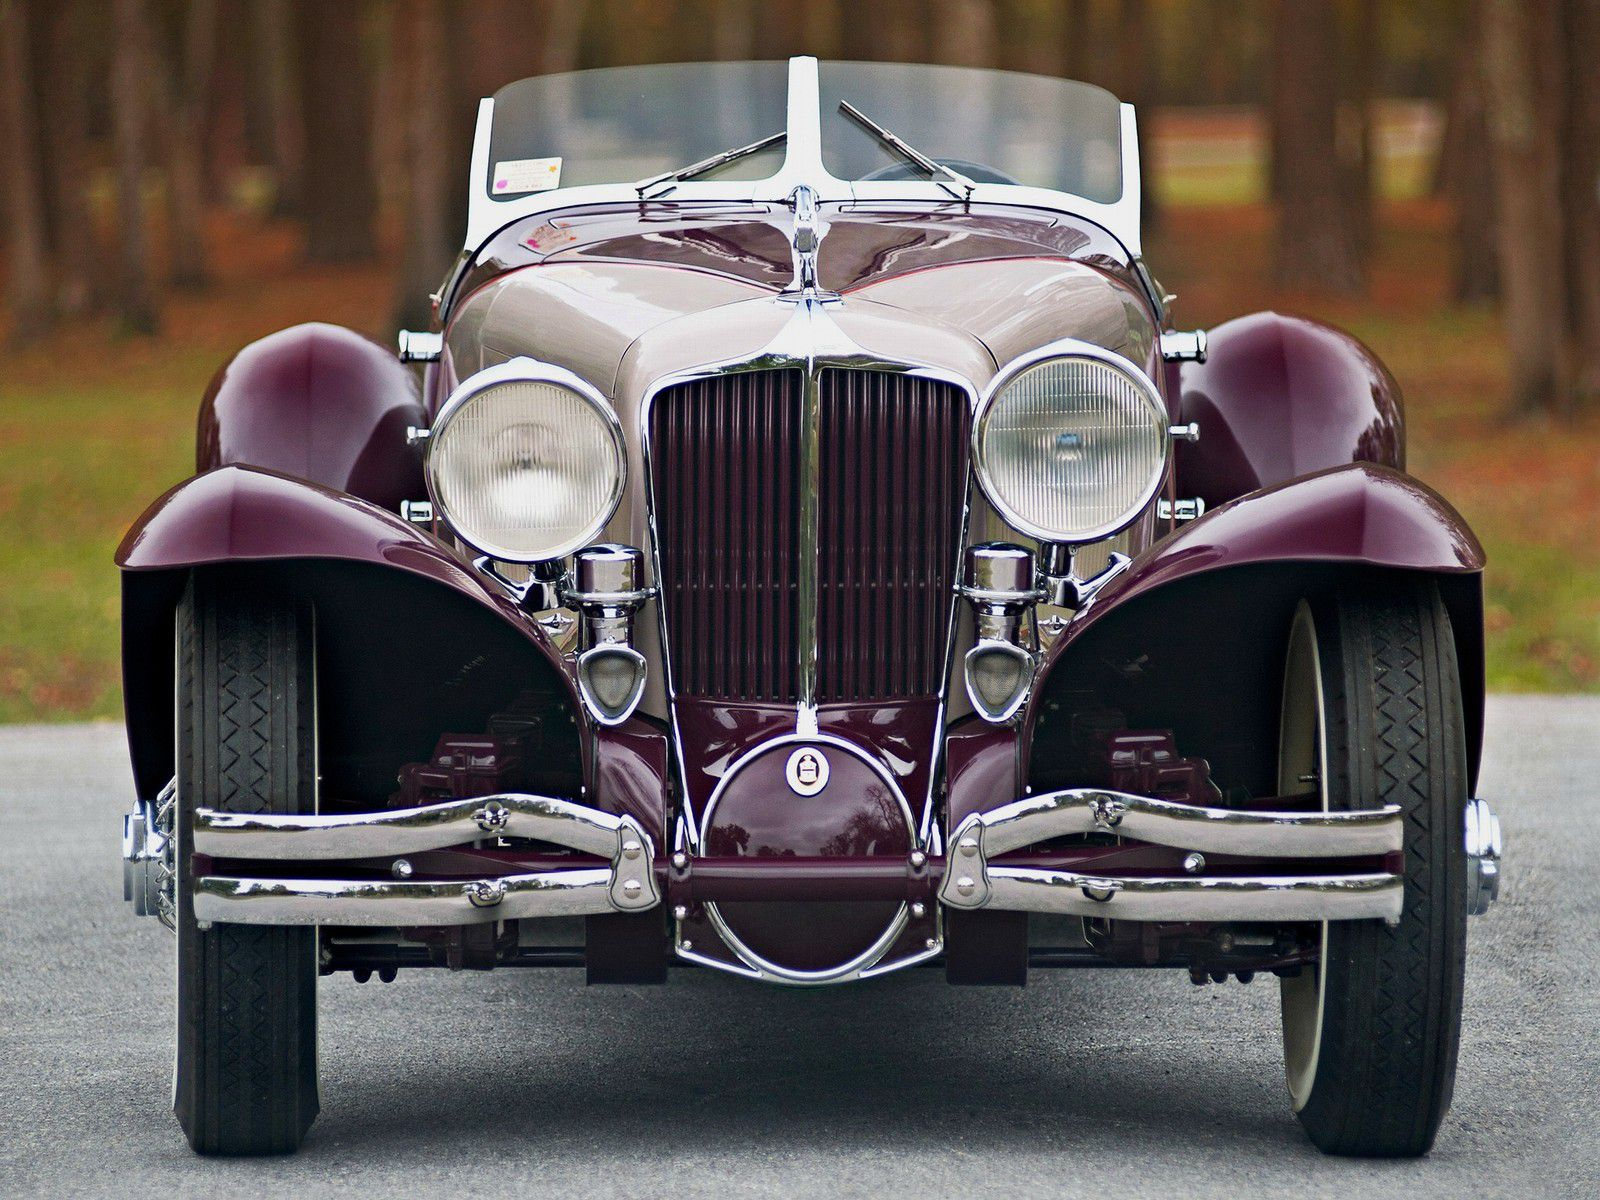 VOITURES DE LEGENDE (1216) : CORD  L29 LaGRANDE SPEEDSTER - 1931